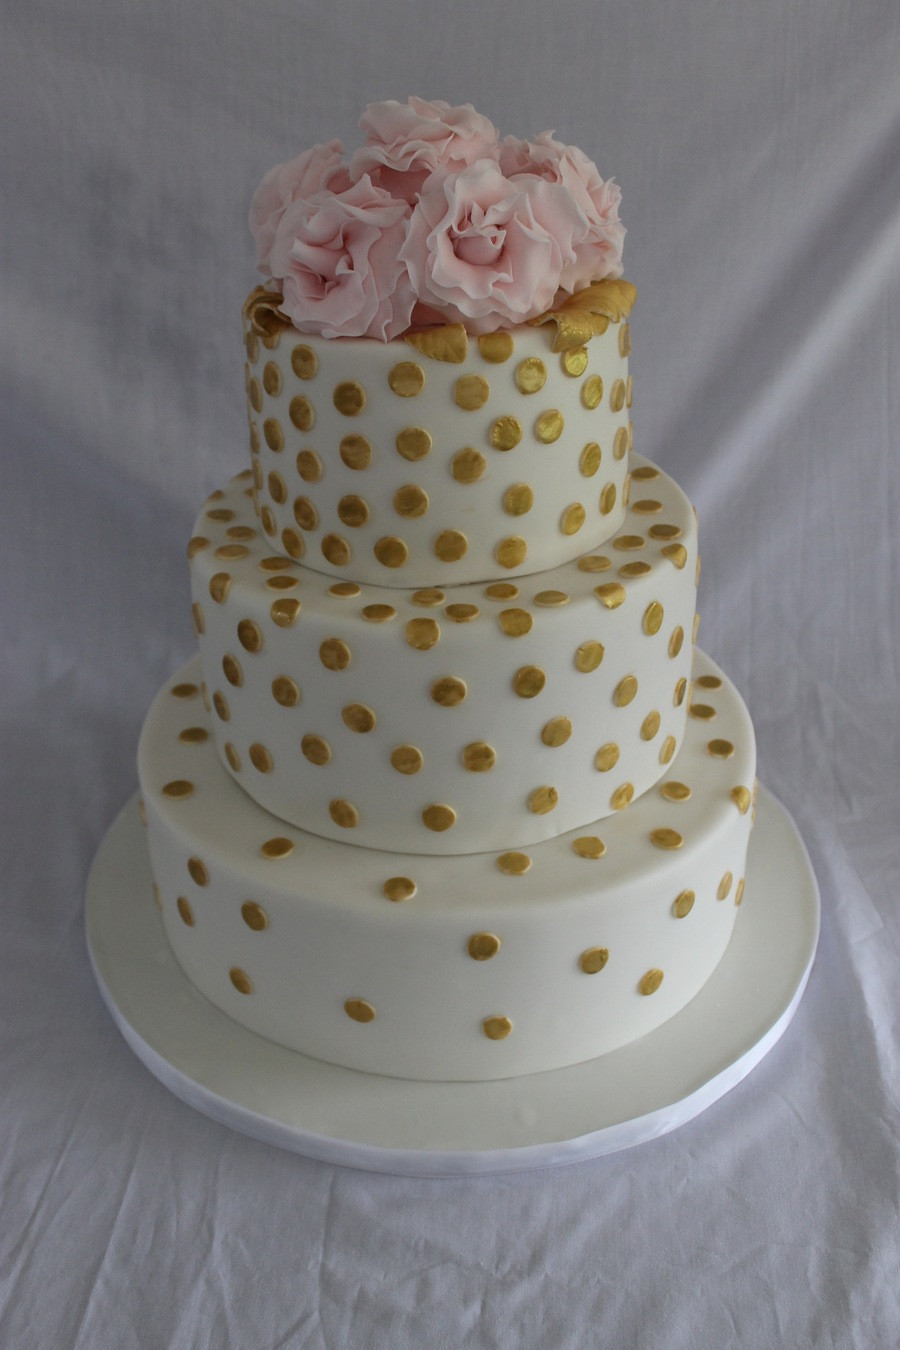 Polka Dotted Wedding Cakes  Gold Polka Dot Wedding Cake CakeCentral